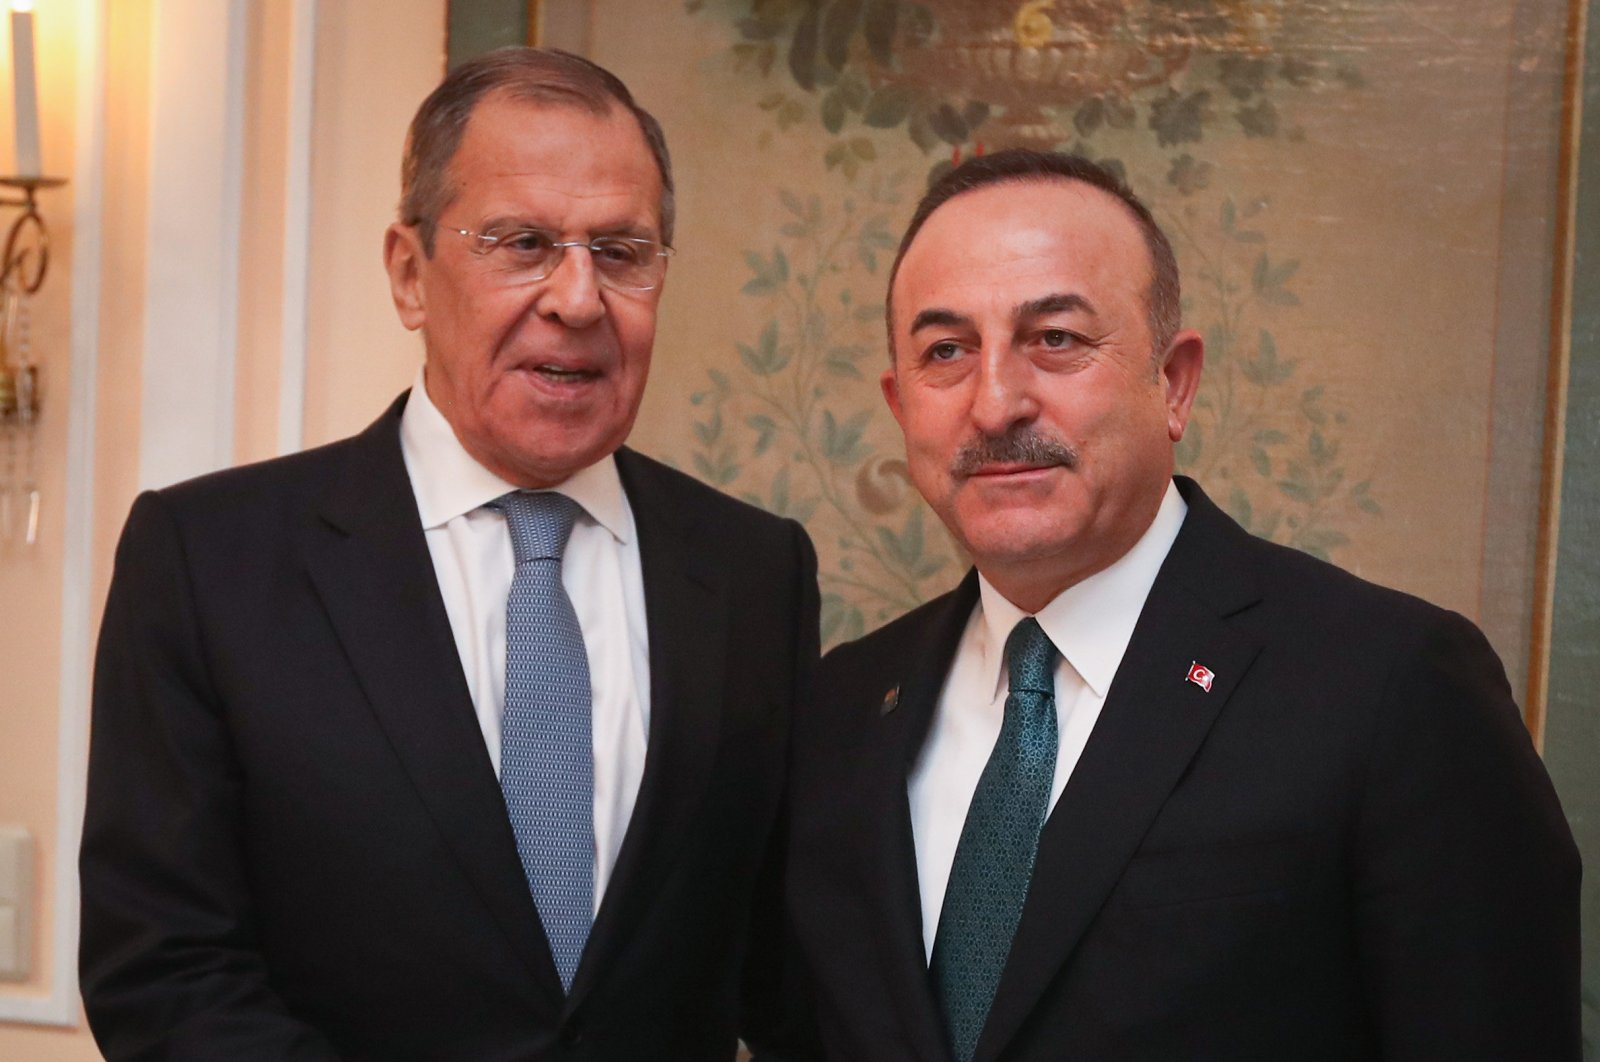 Russian Foreign Minister Sergey Lavrov (L) shakes hand with his Turkish counterpart, Mevlüt Çavuşoğlu, during the Munich Security Conference, Munich, Germany, Feb.17, 2020. (AA Photo)